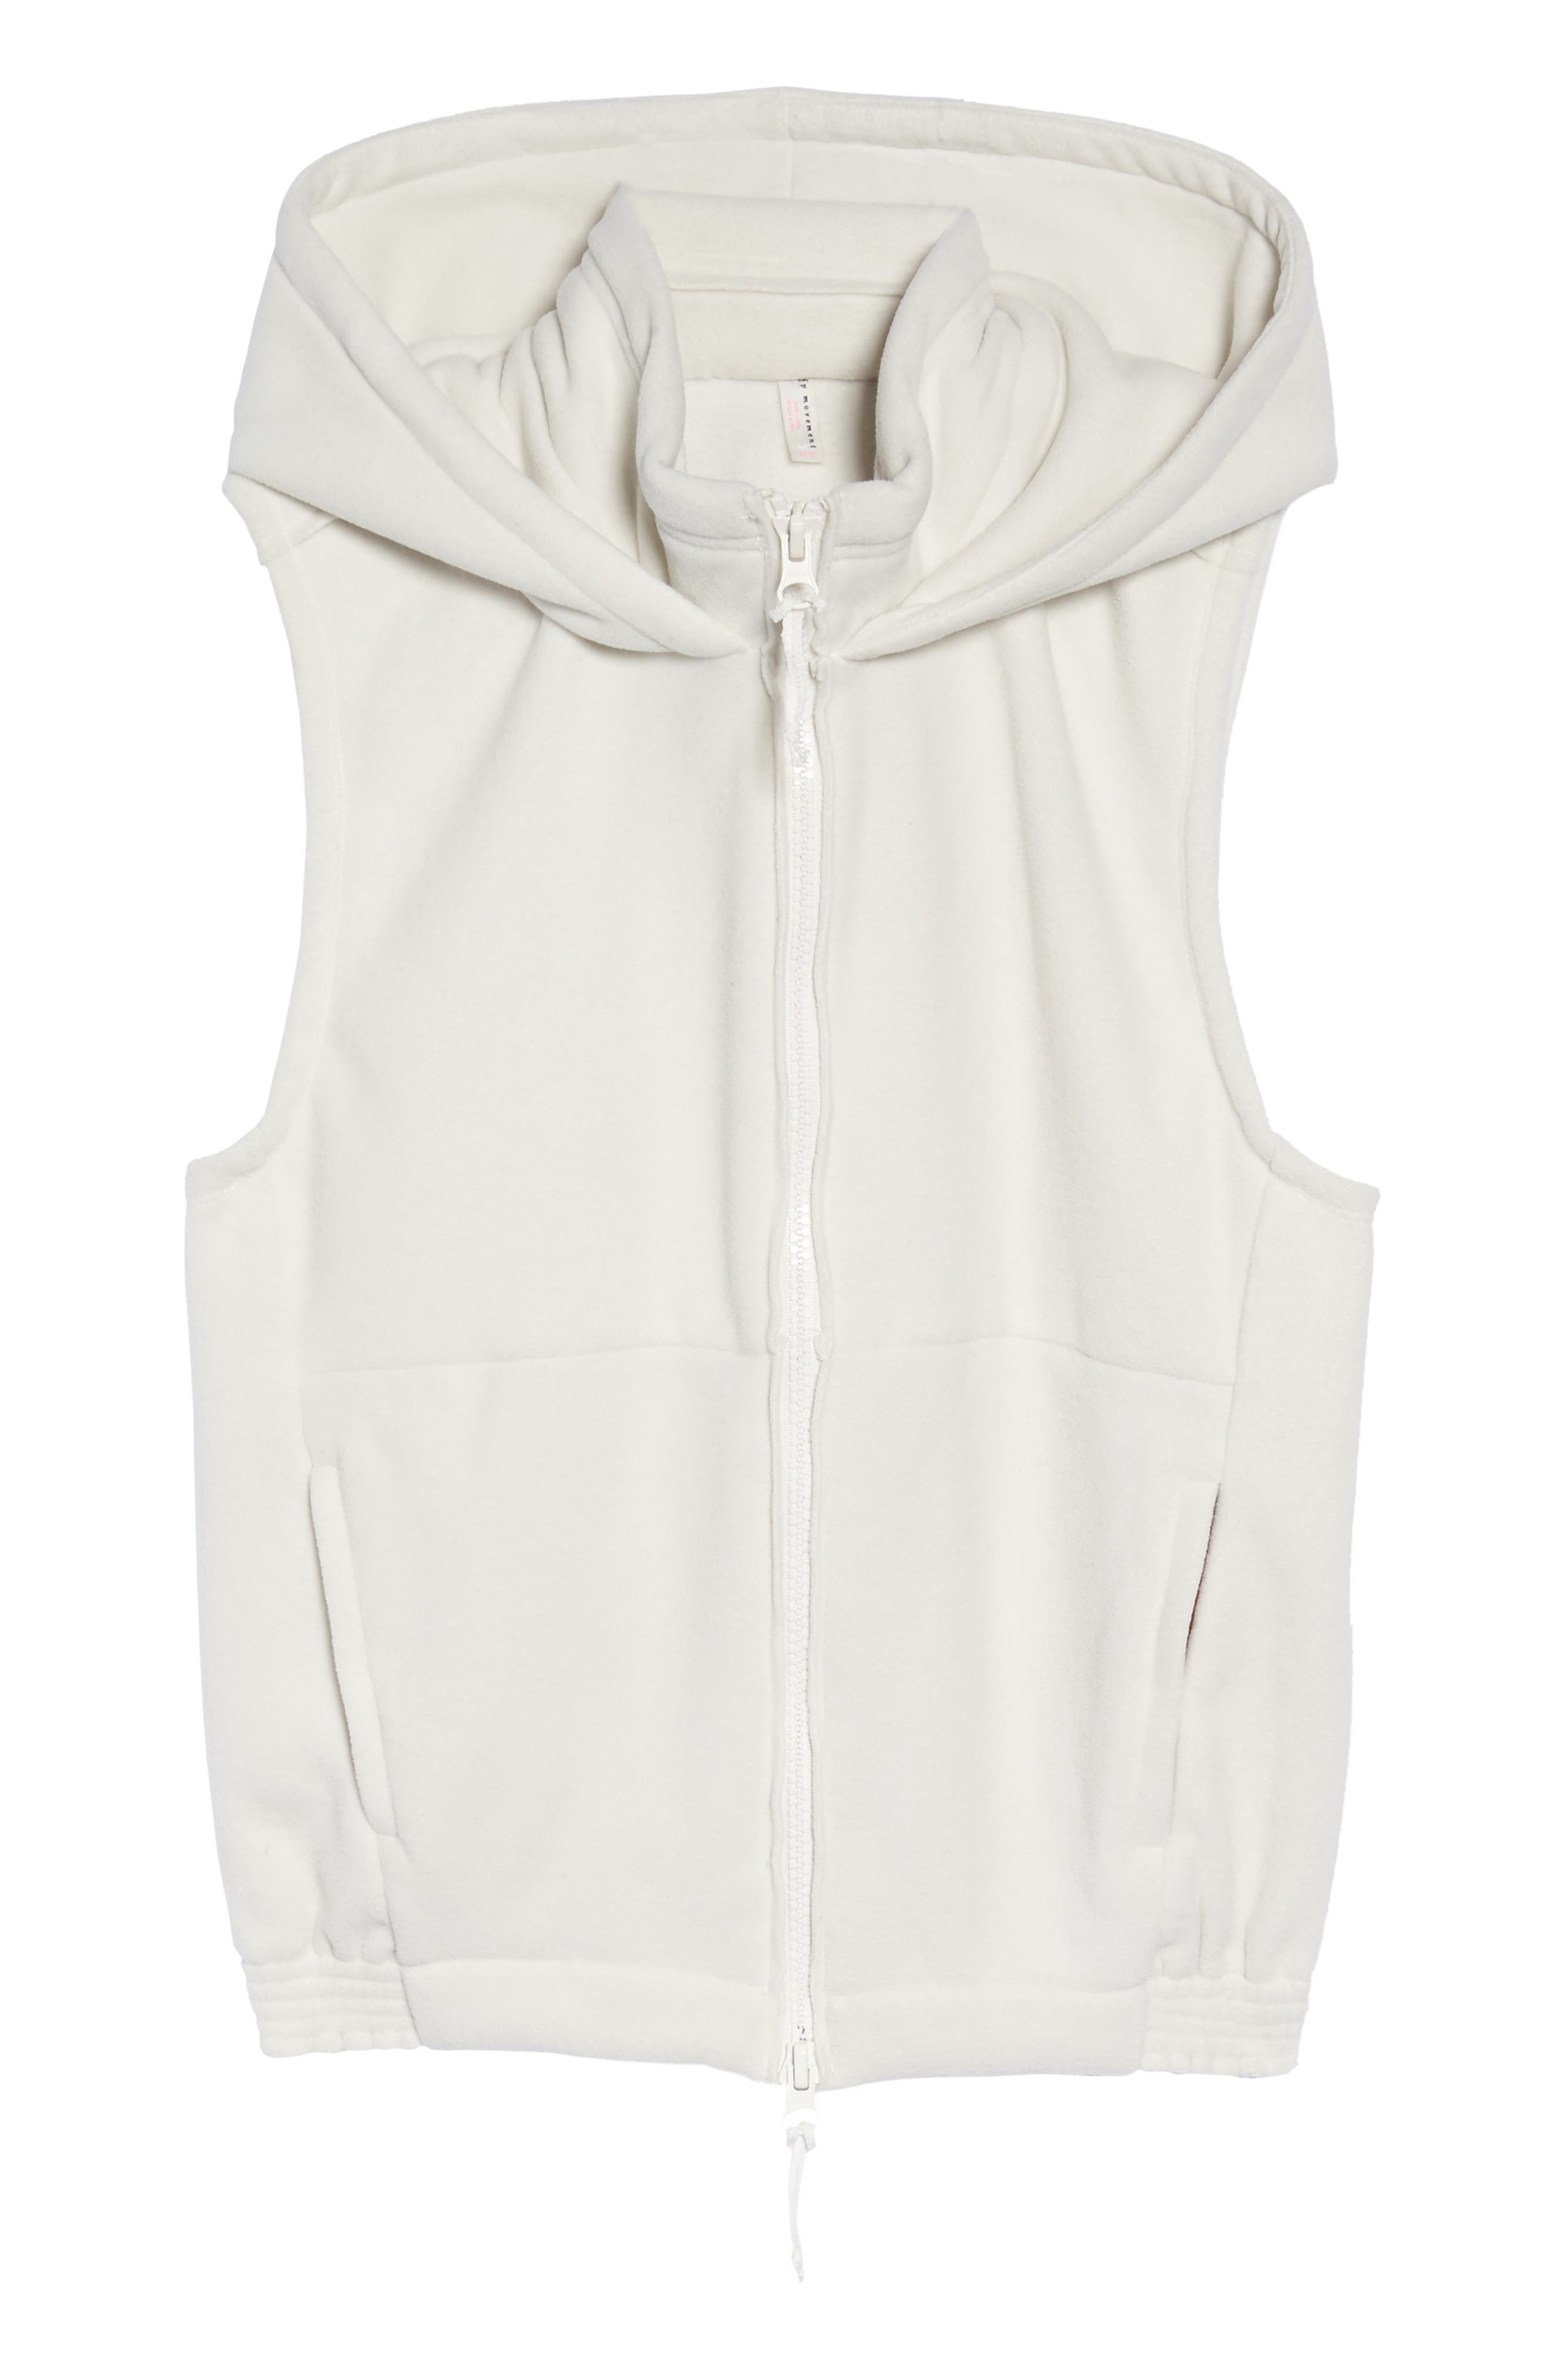 FP Movement Higher Ground Vest,                             Alternate thumbnail 7, color,                             White